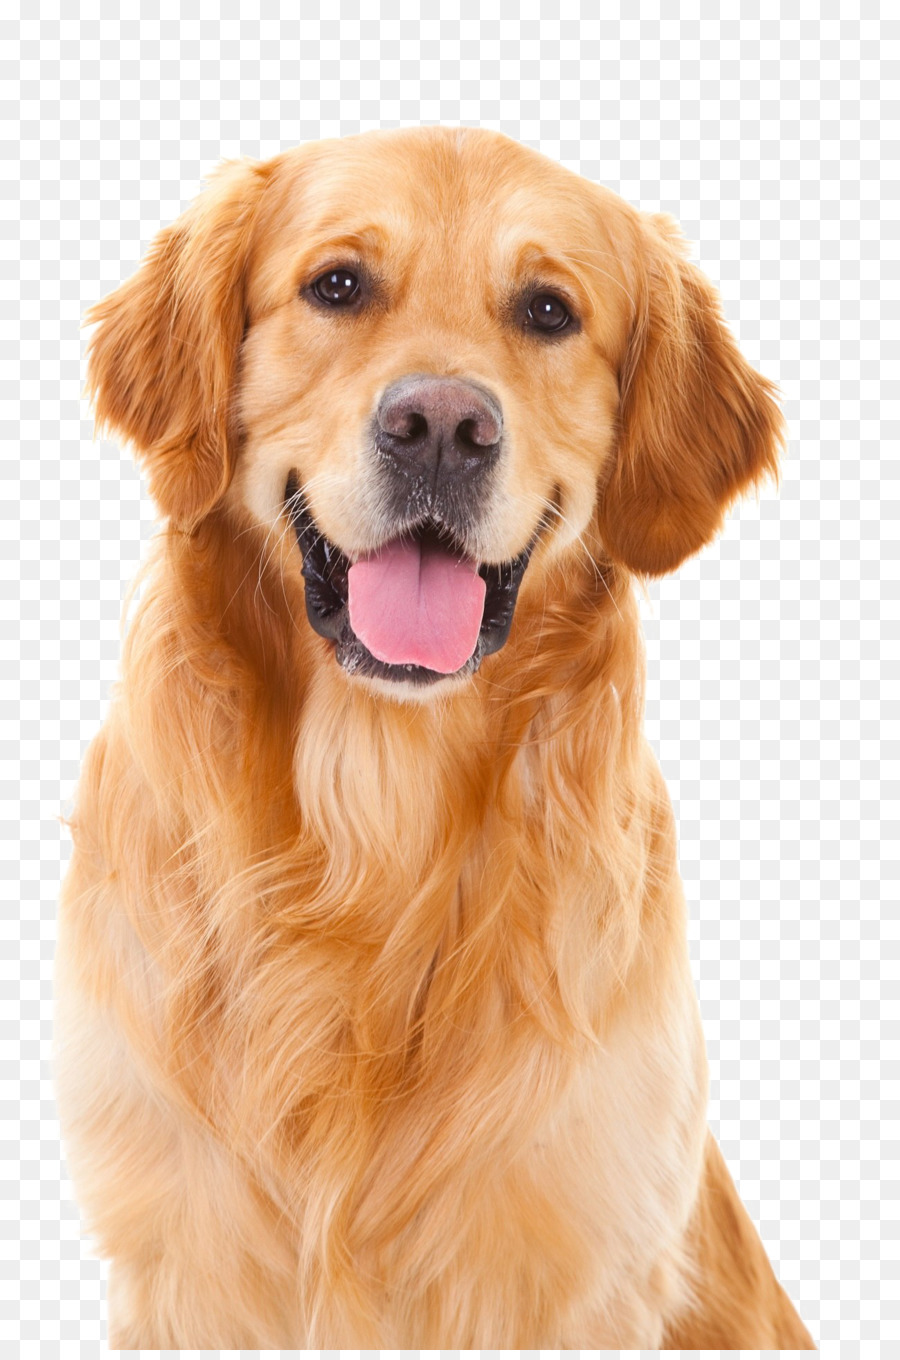 Golden Retriever Background Png Download 1300 1950 Free Transparent Puppy Png Download Cleanpng Kisspng